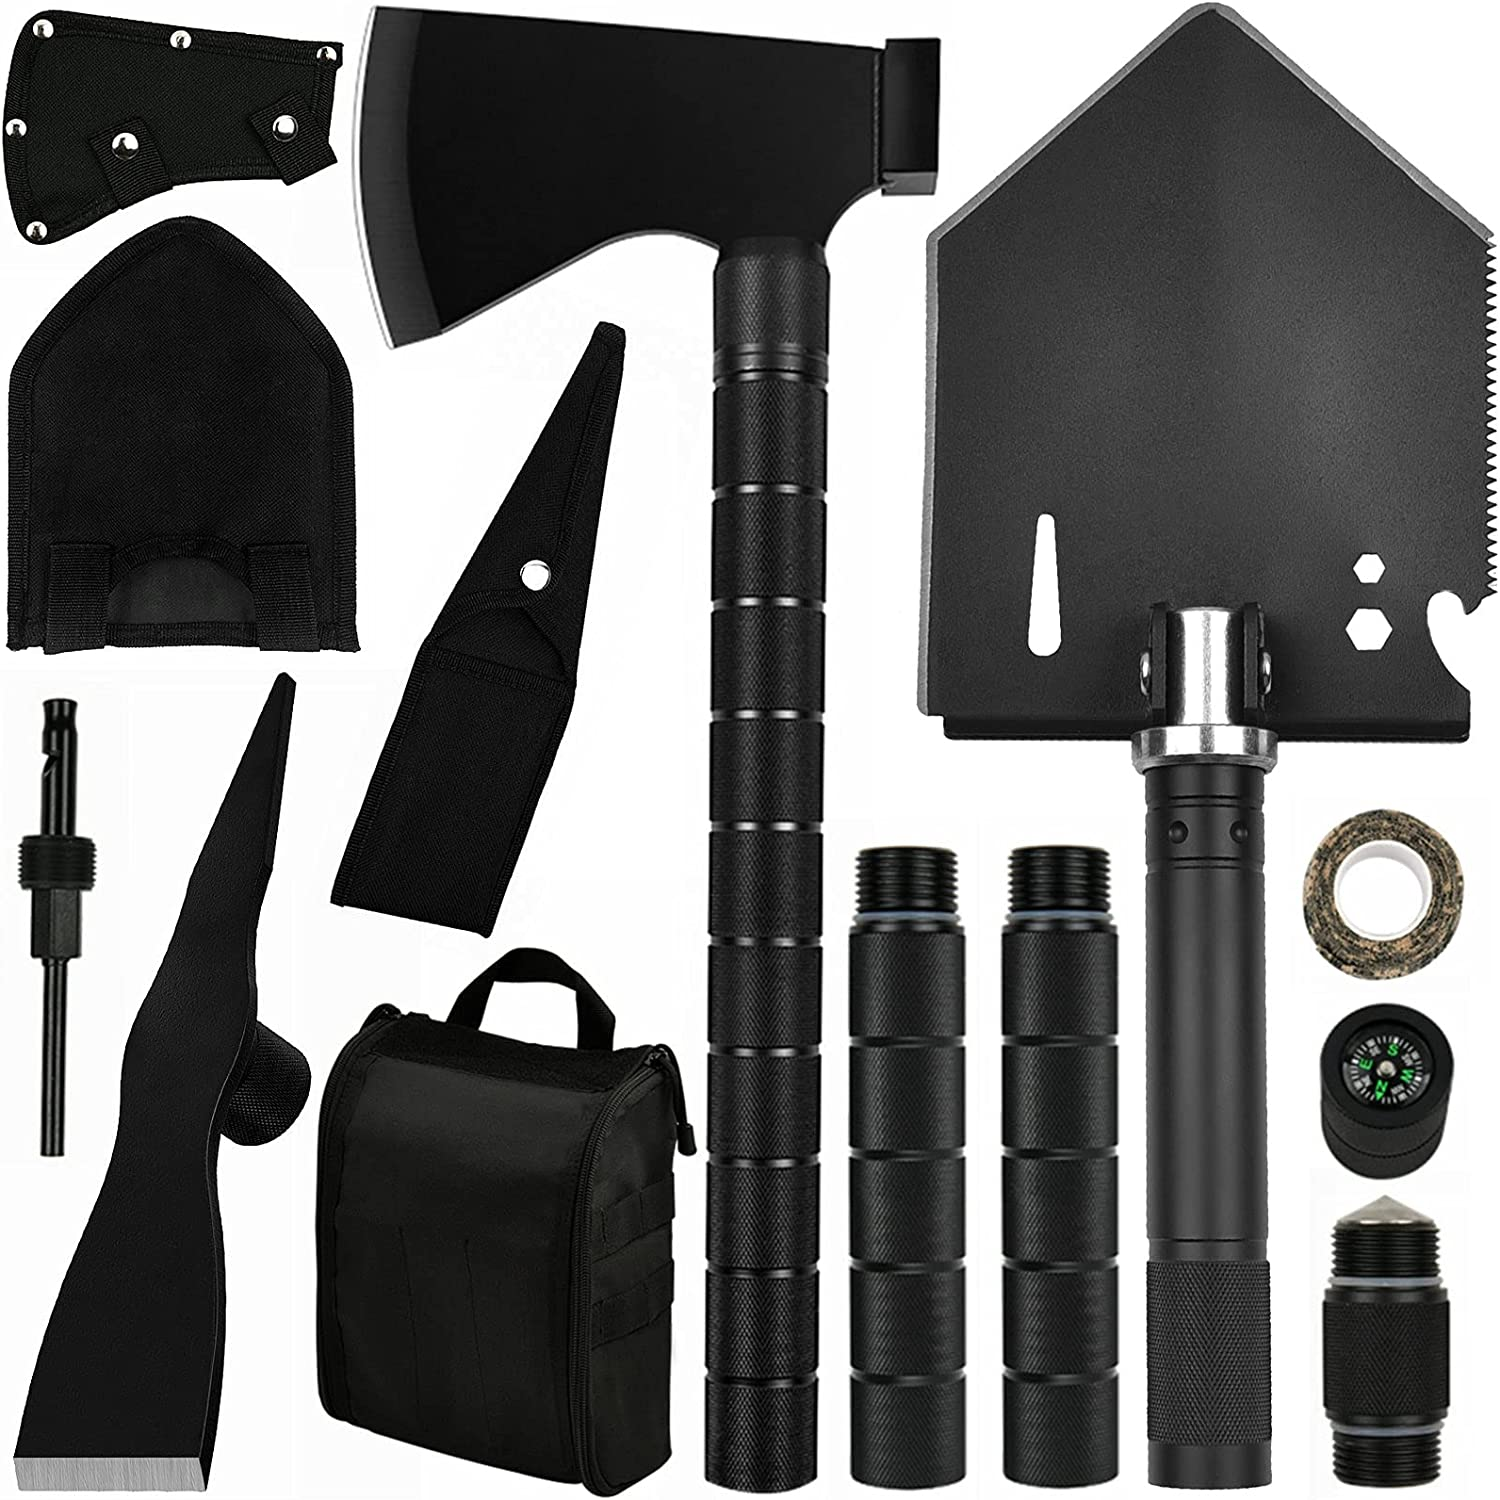 IUNIO Tucson Mall Survival Off-Roading Tool Kit Axe low-pricing Folding Shovel Camping